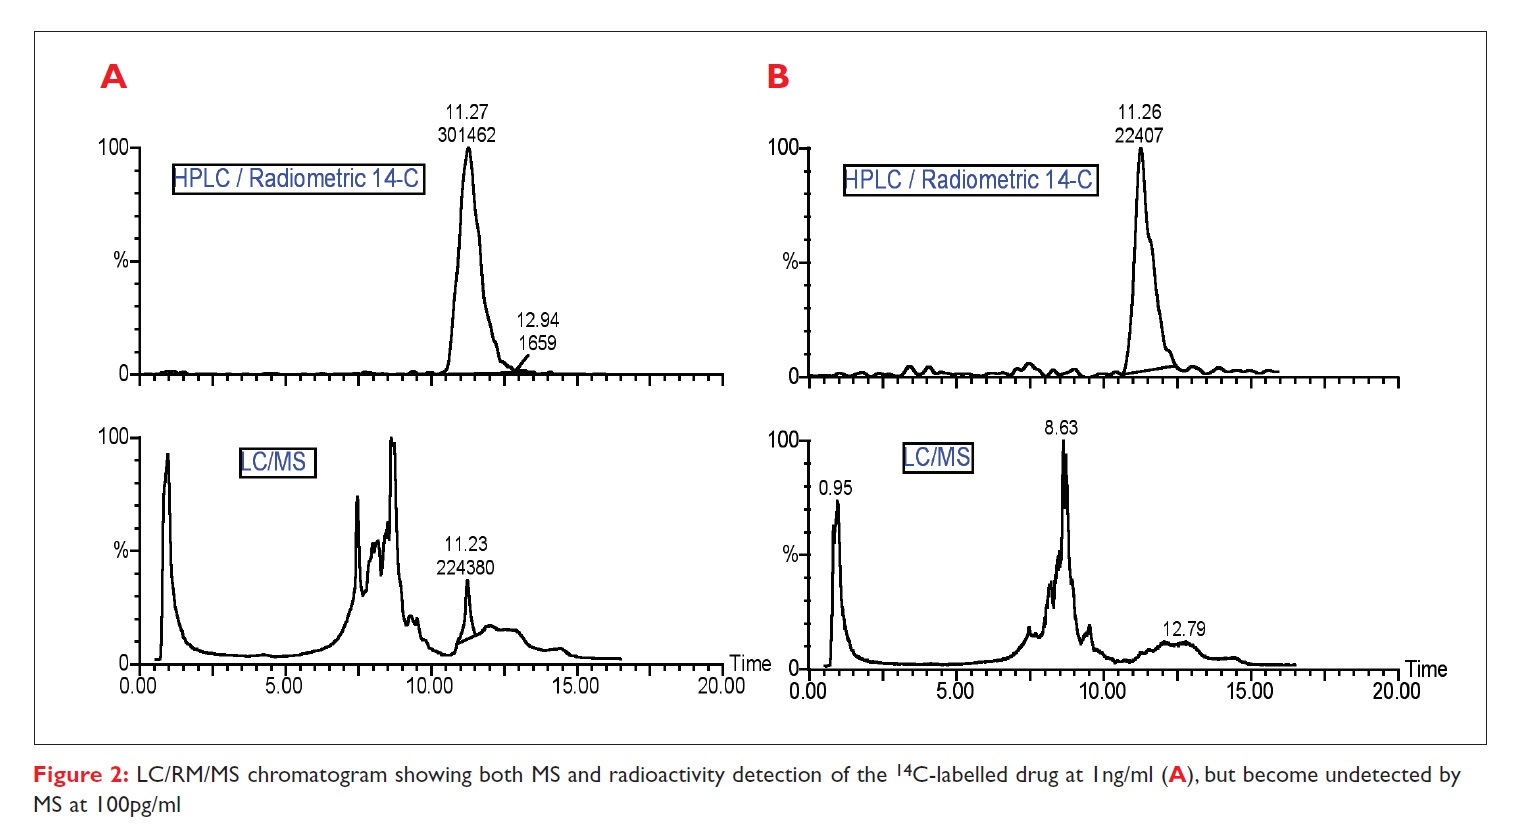 Figure 2 LC/RM/MS chromatogram showing both MS and radioactivity detection of the 14C-labelled drug at 1ng/ml